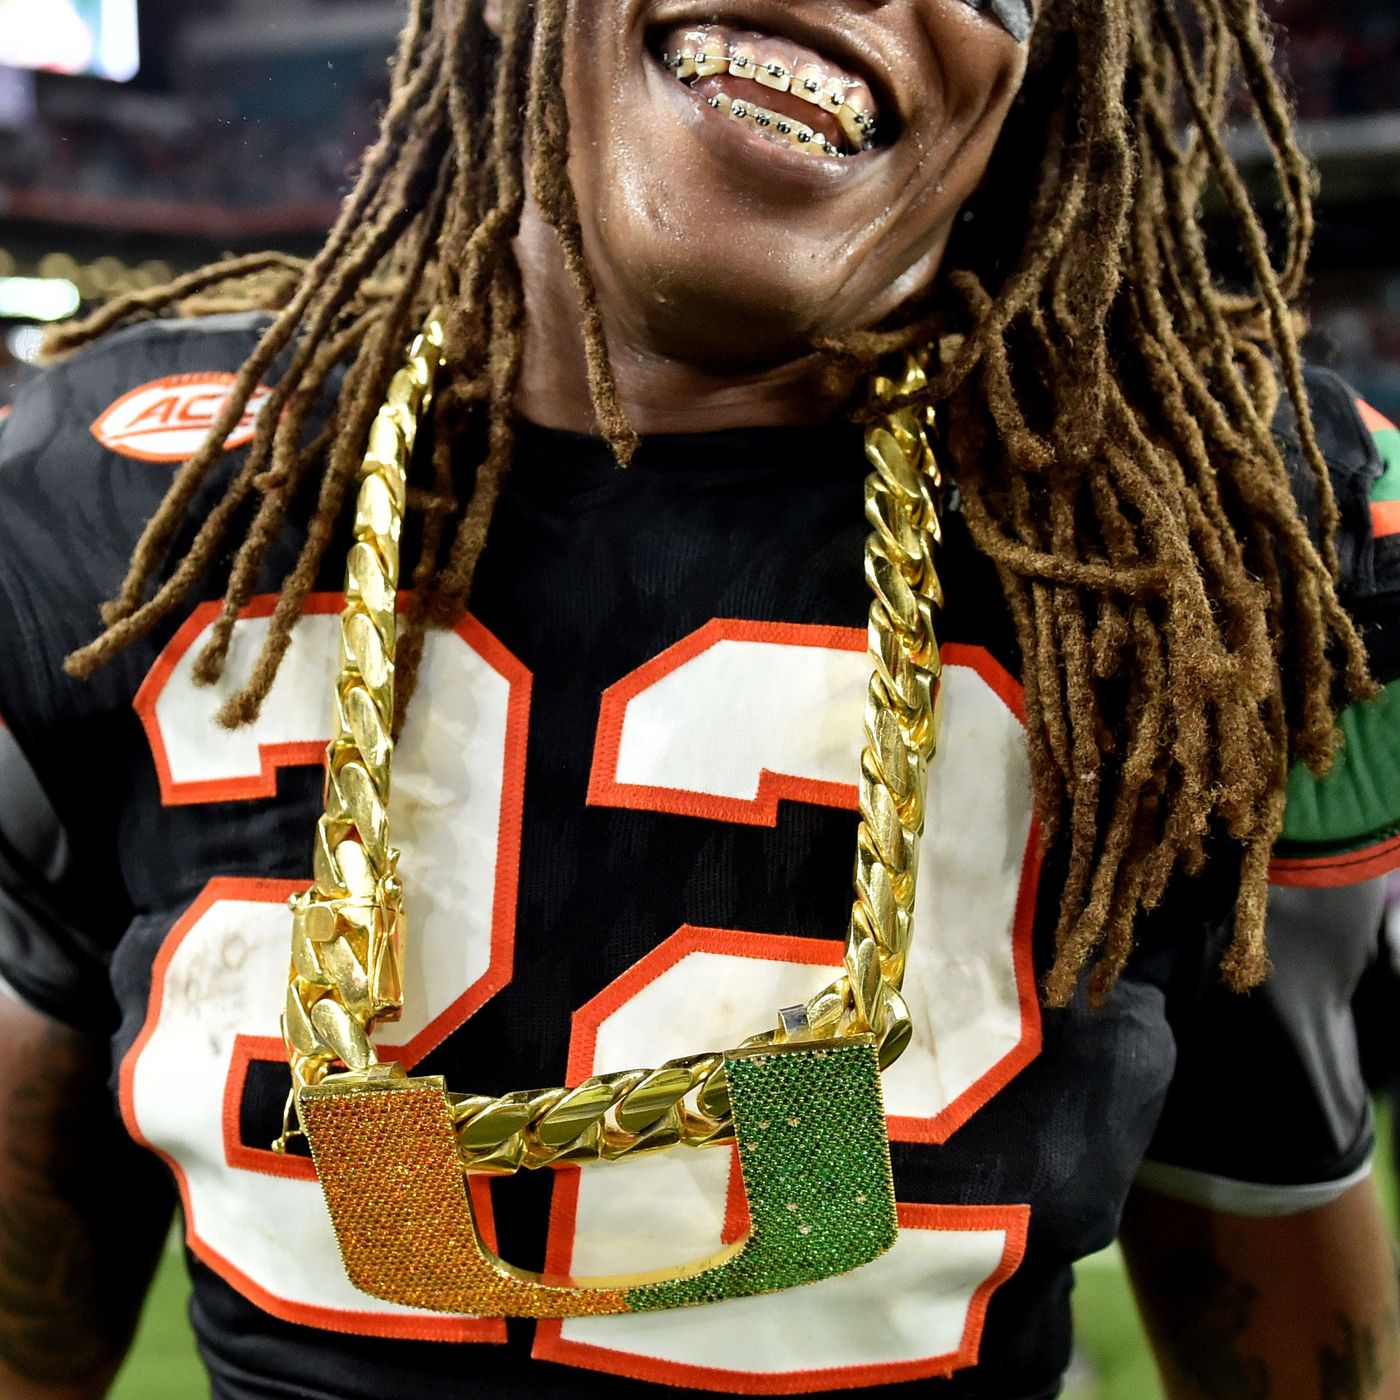 Why Miami Hurricanes wear a big gold chain on the sideline